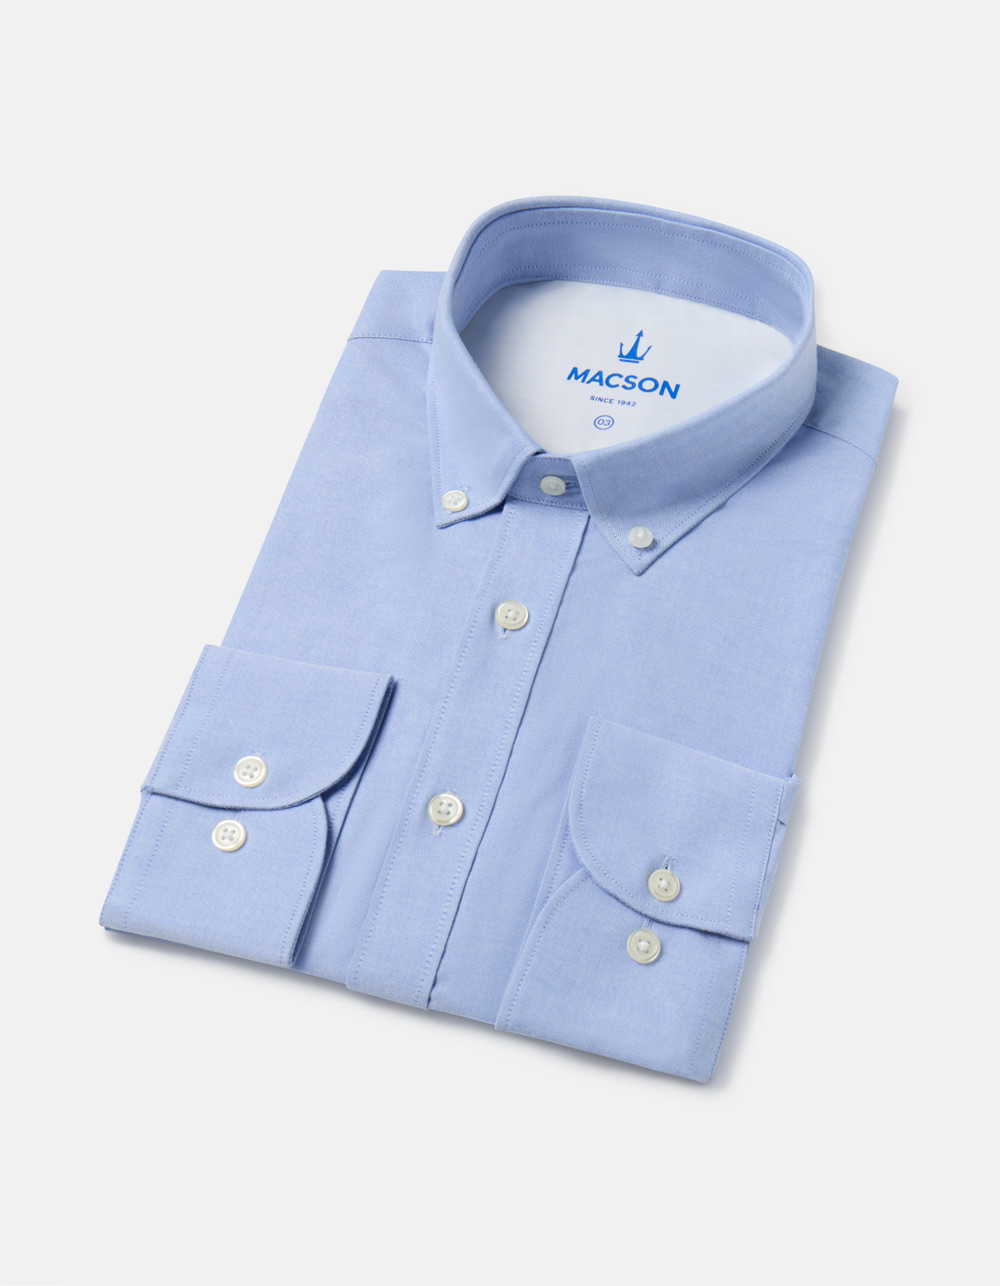 Light blue plain shirt with pocket